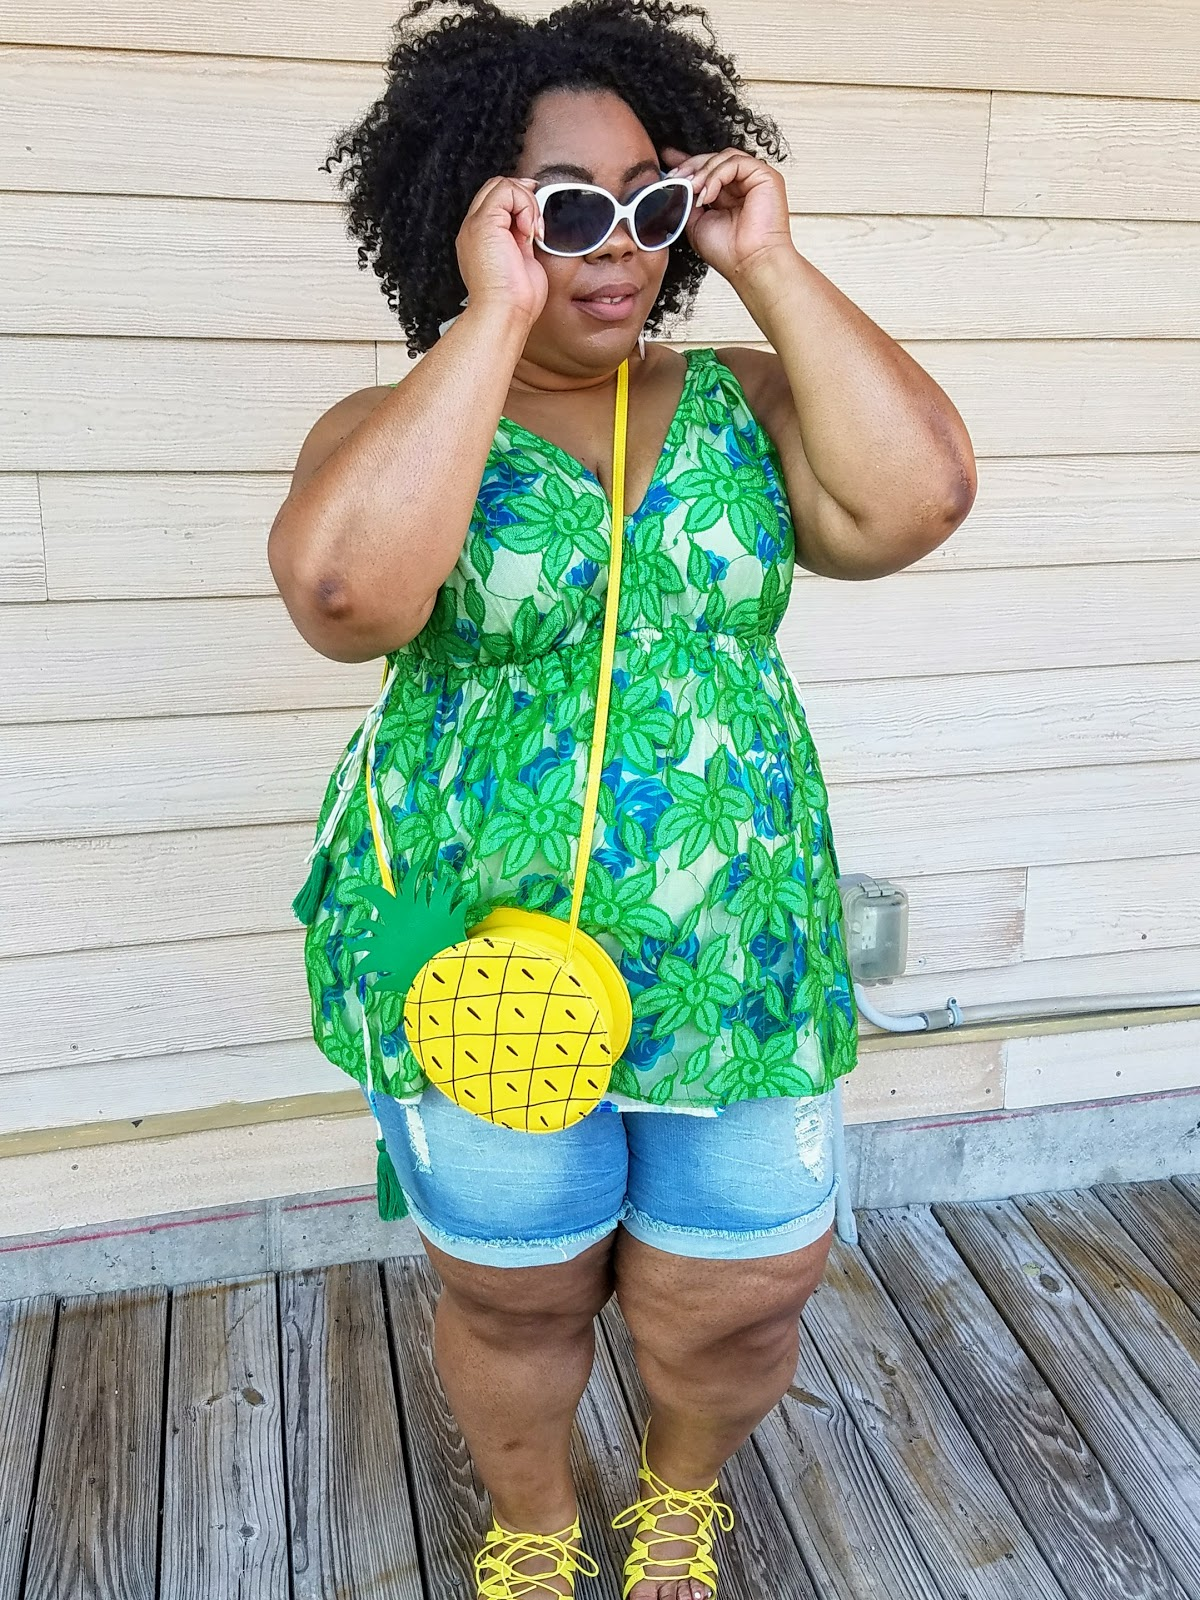 plus size, blogger, florals, shorts, sandals, crossbody purse, natural hair, bold makeup, natural hair, fashion sunglasses